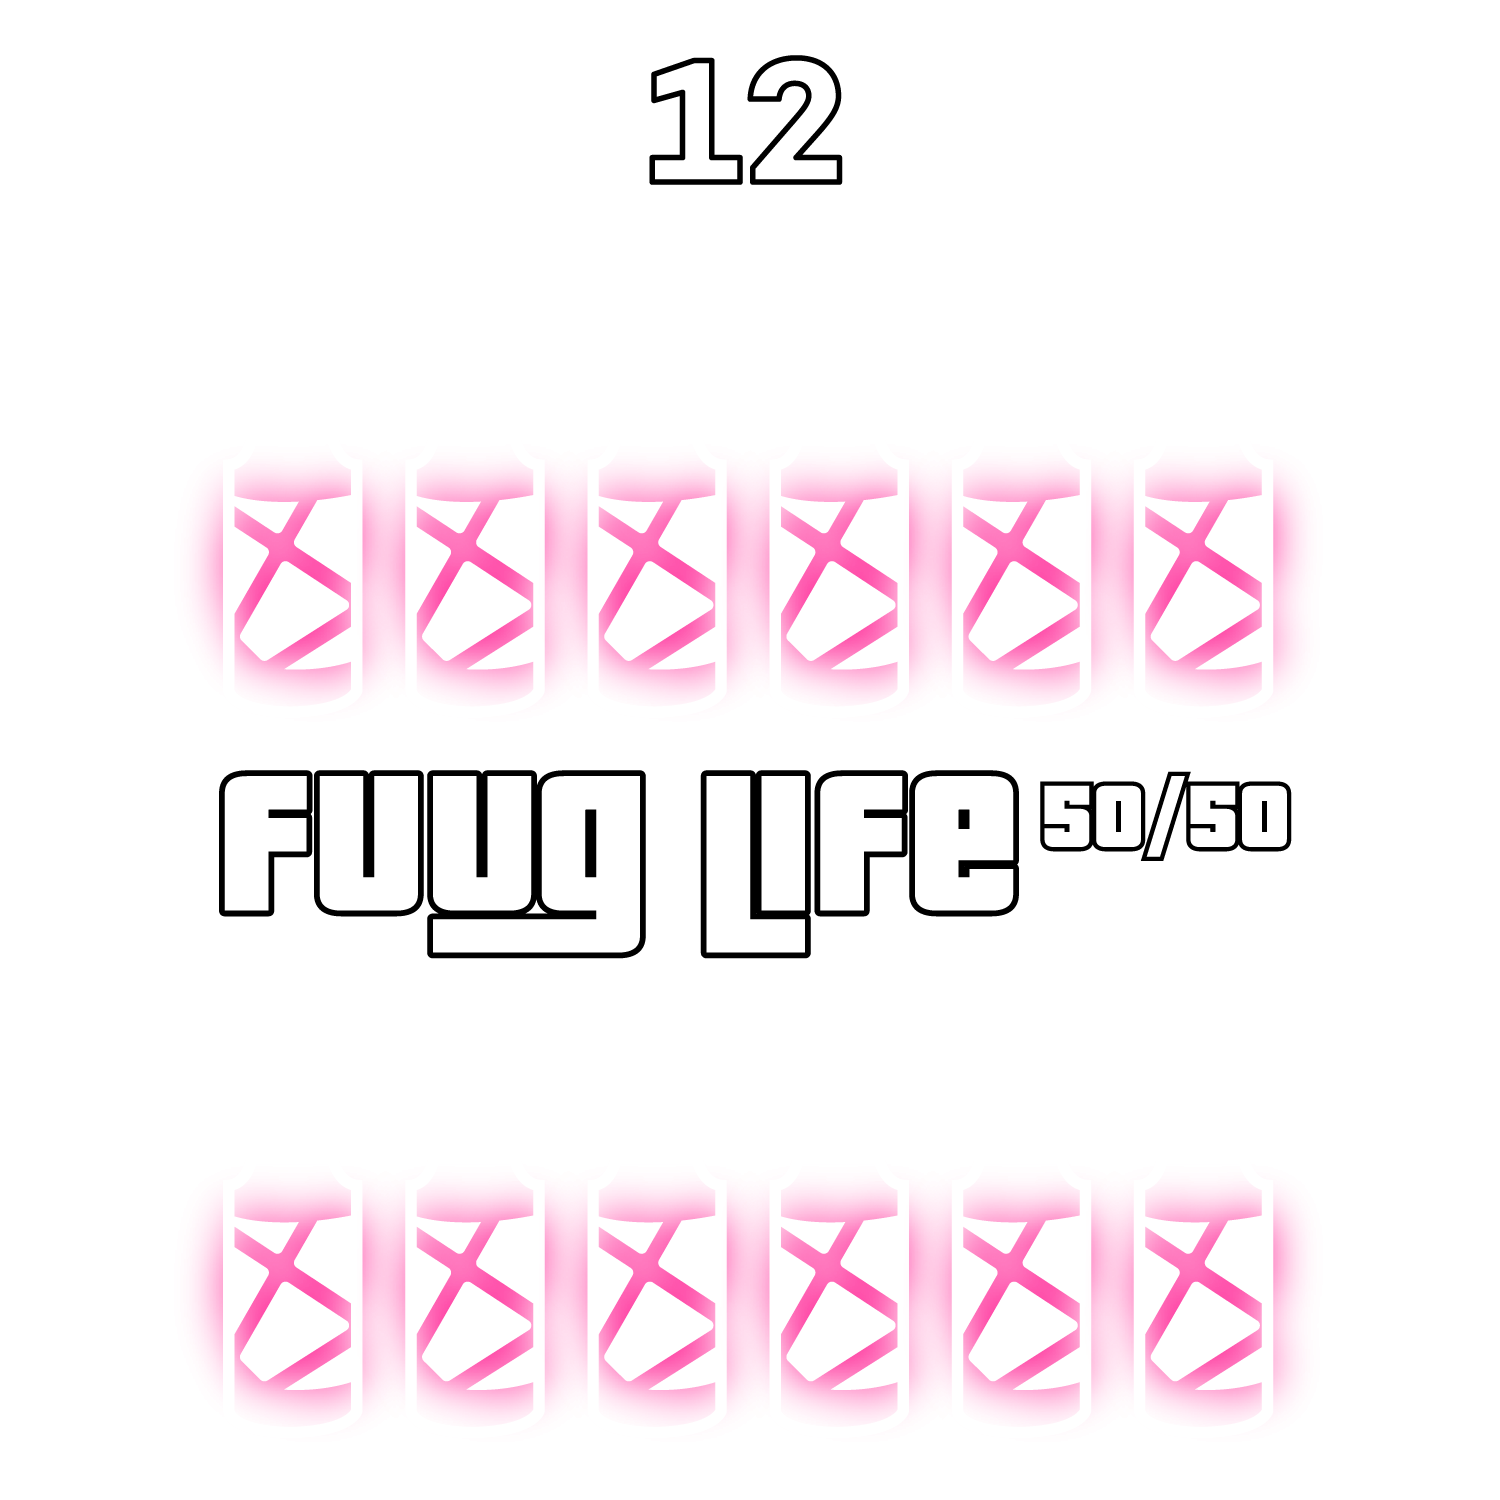 12-pack Fuuglife 50/50